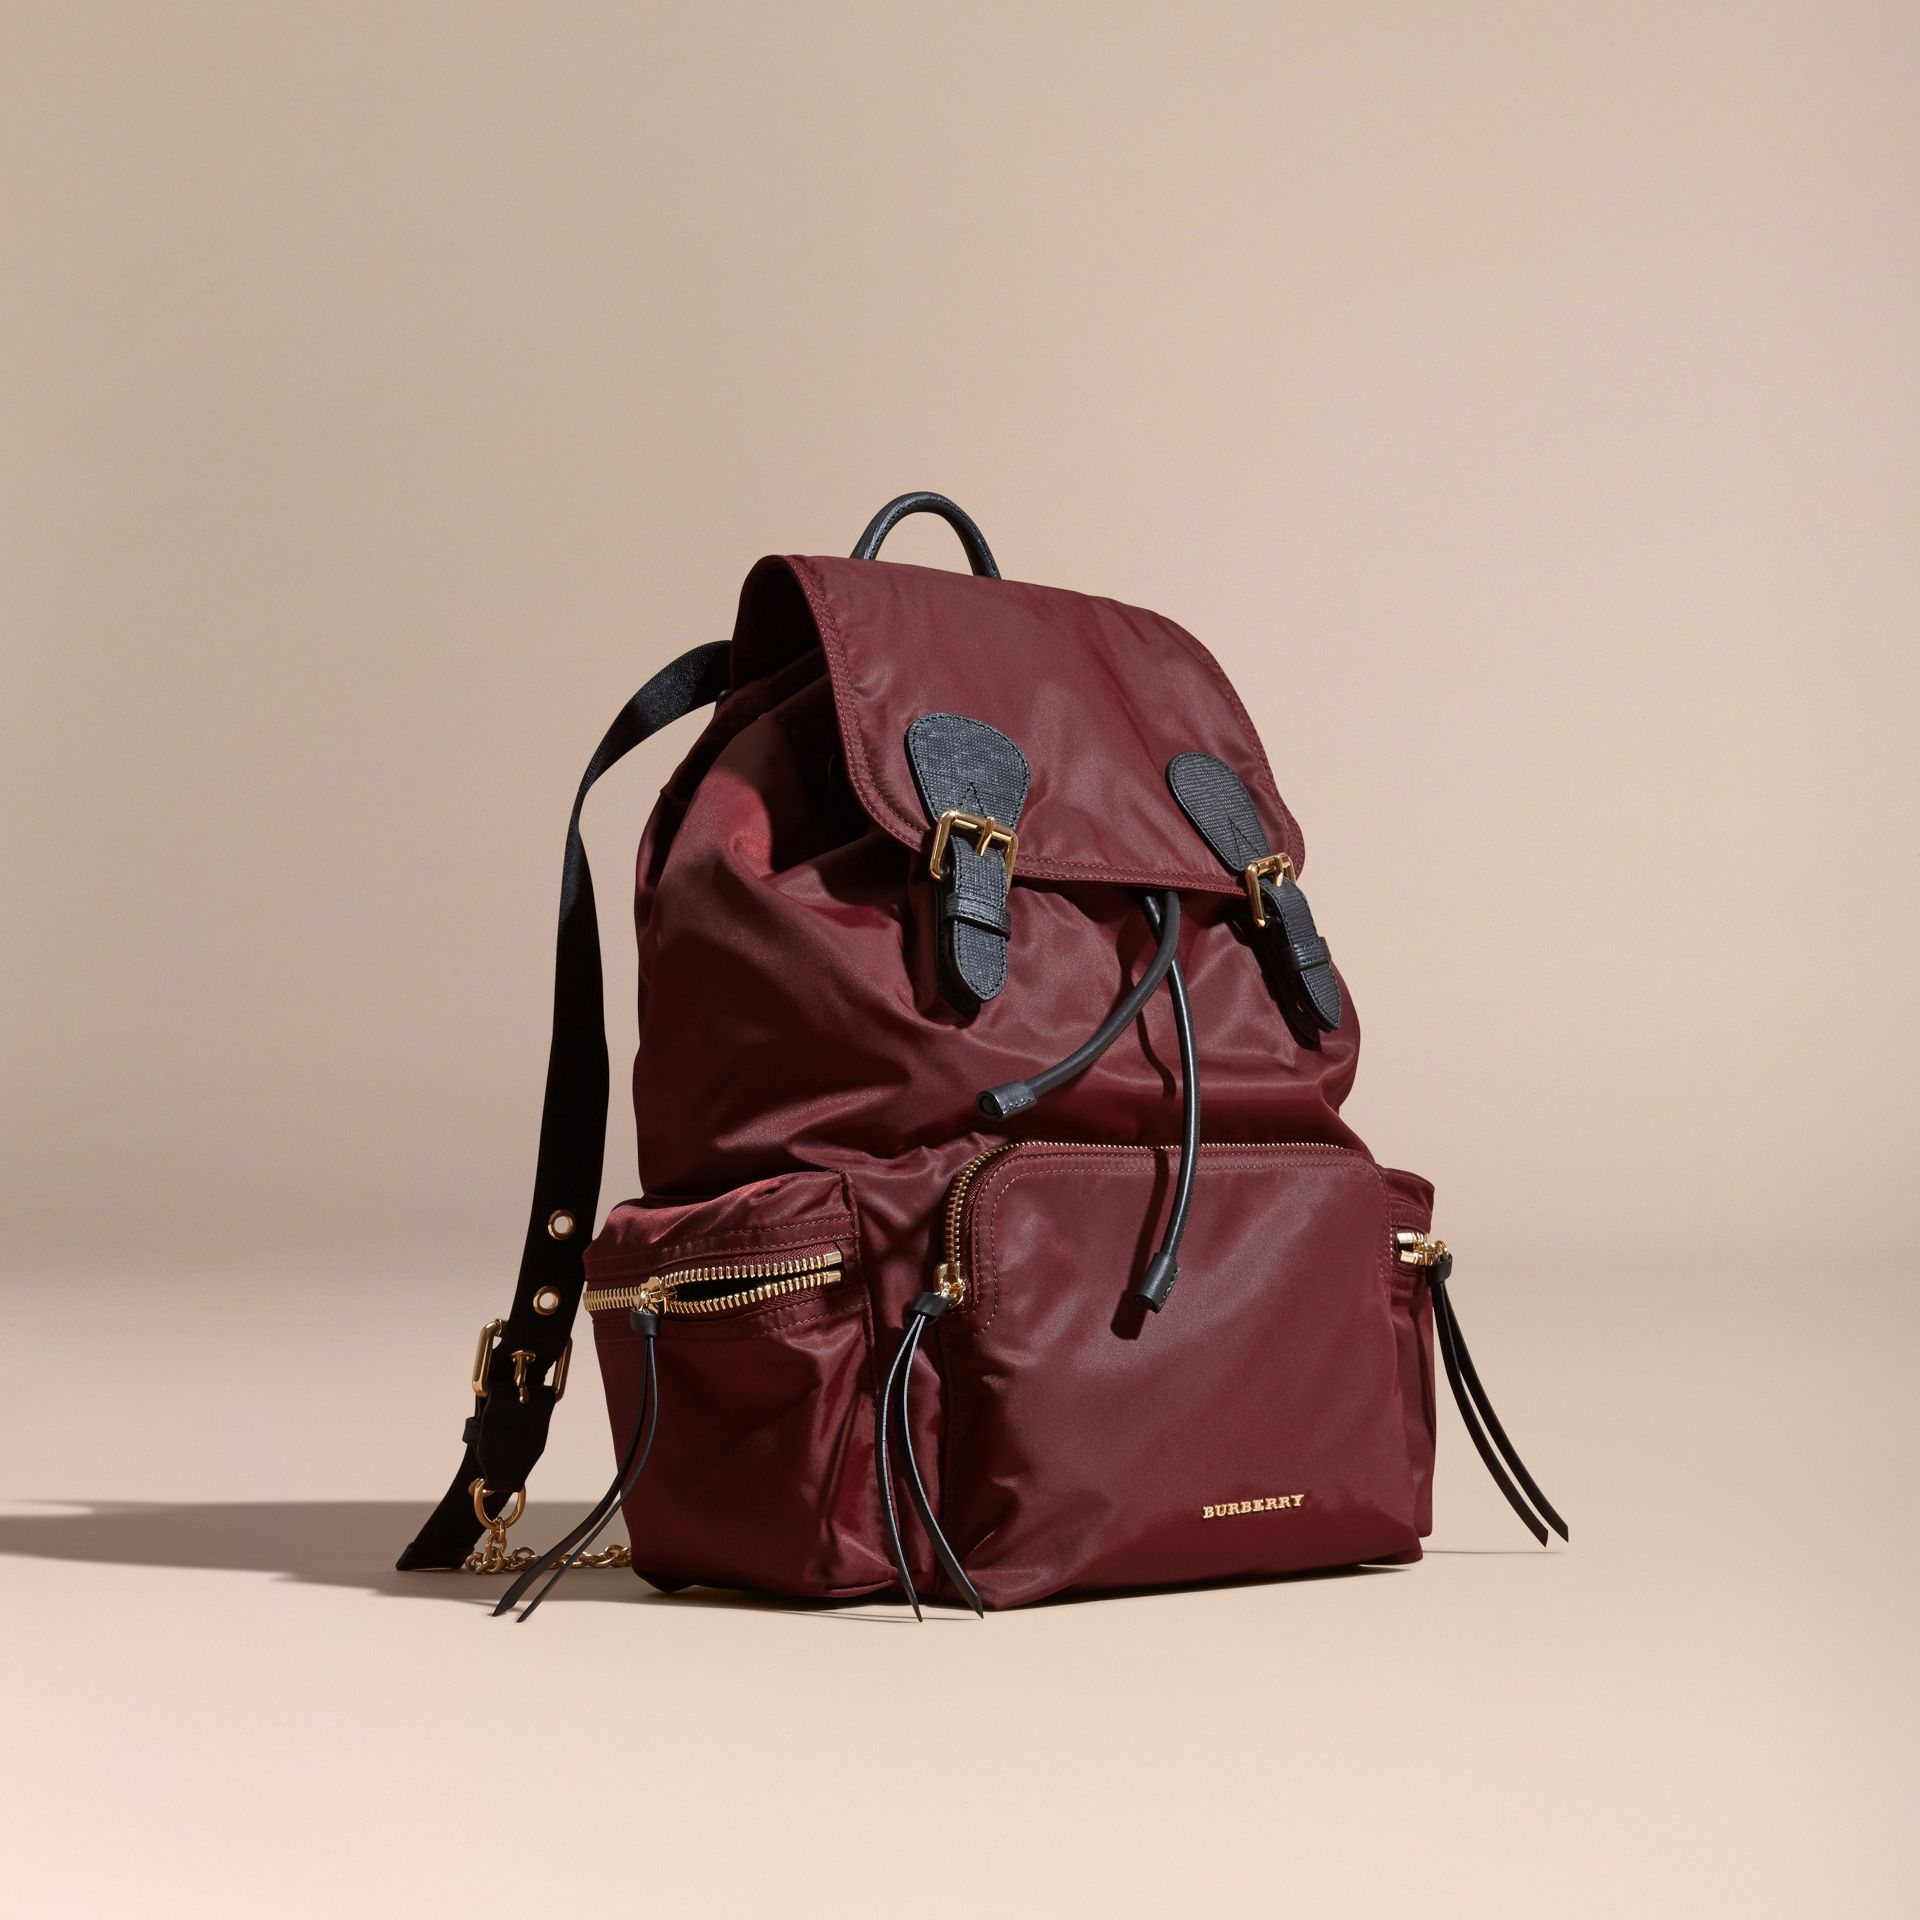 Burgundy red The Large Rucksack in Technical Nylon and Leather Burgundy Red - gallery image 1